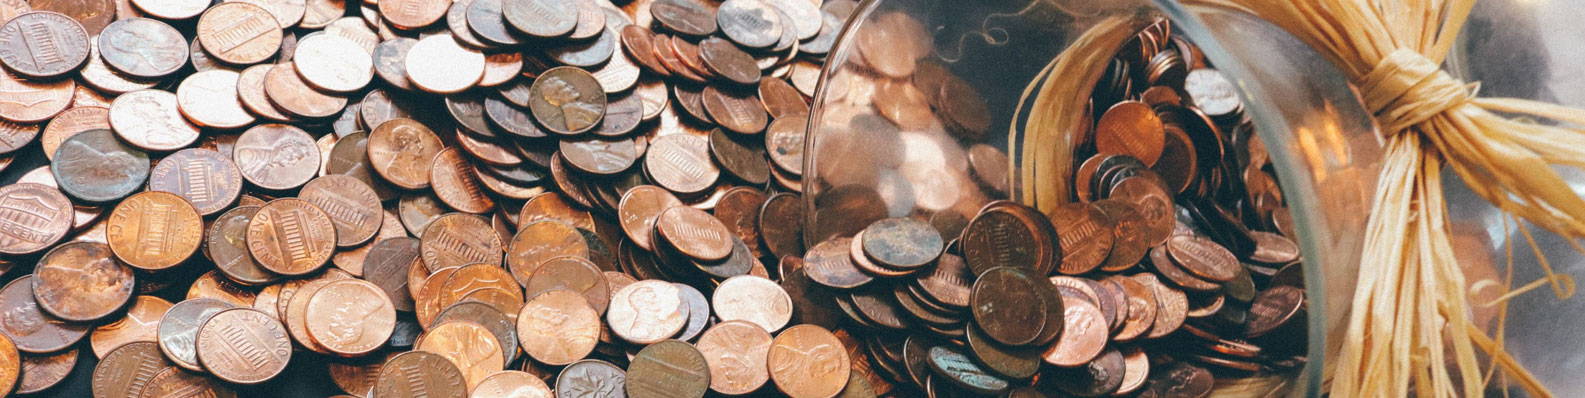 Fundraising for Church Groups